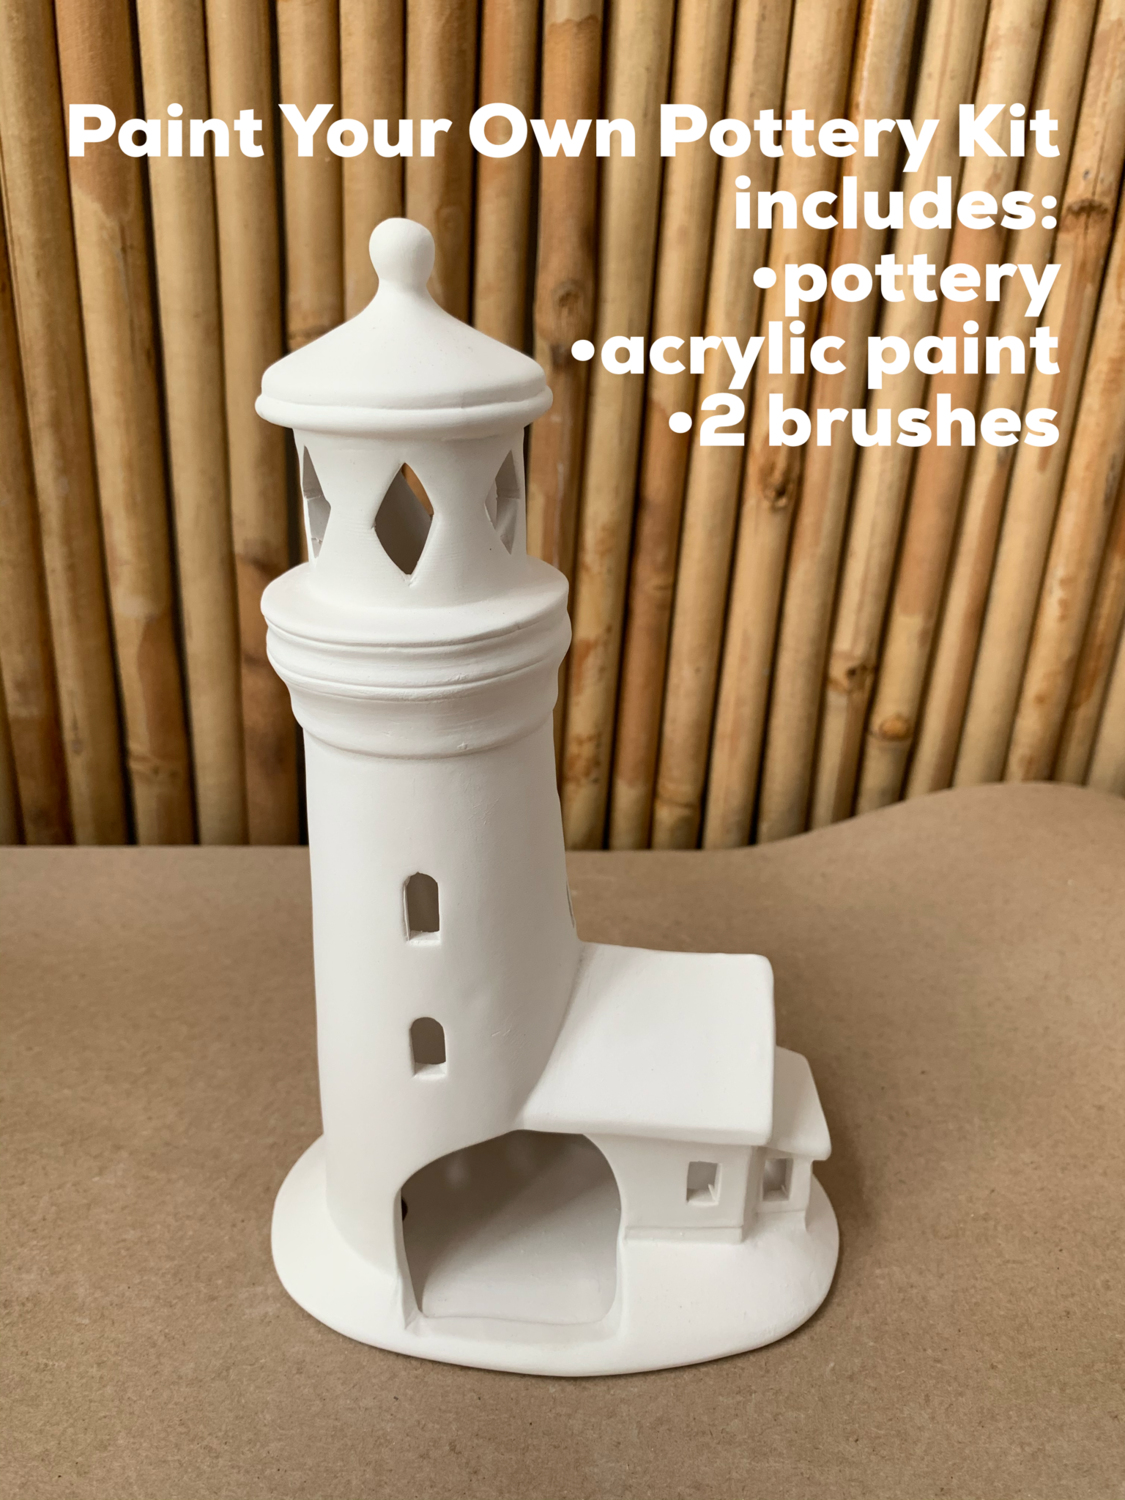 NO FIRE Paint Your Own Pottery Kit -  Ceramic Lighthouse Luminary Lantern Acrylic Painting Kit